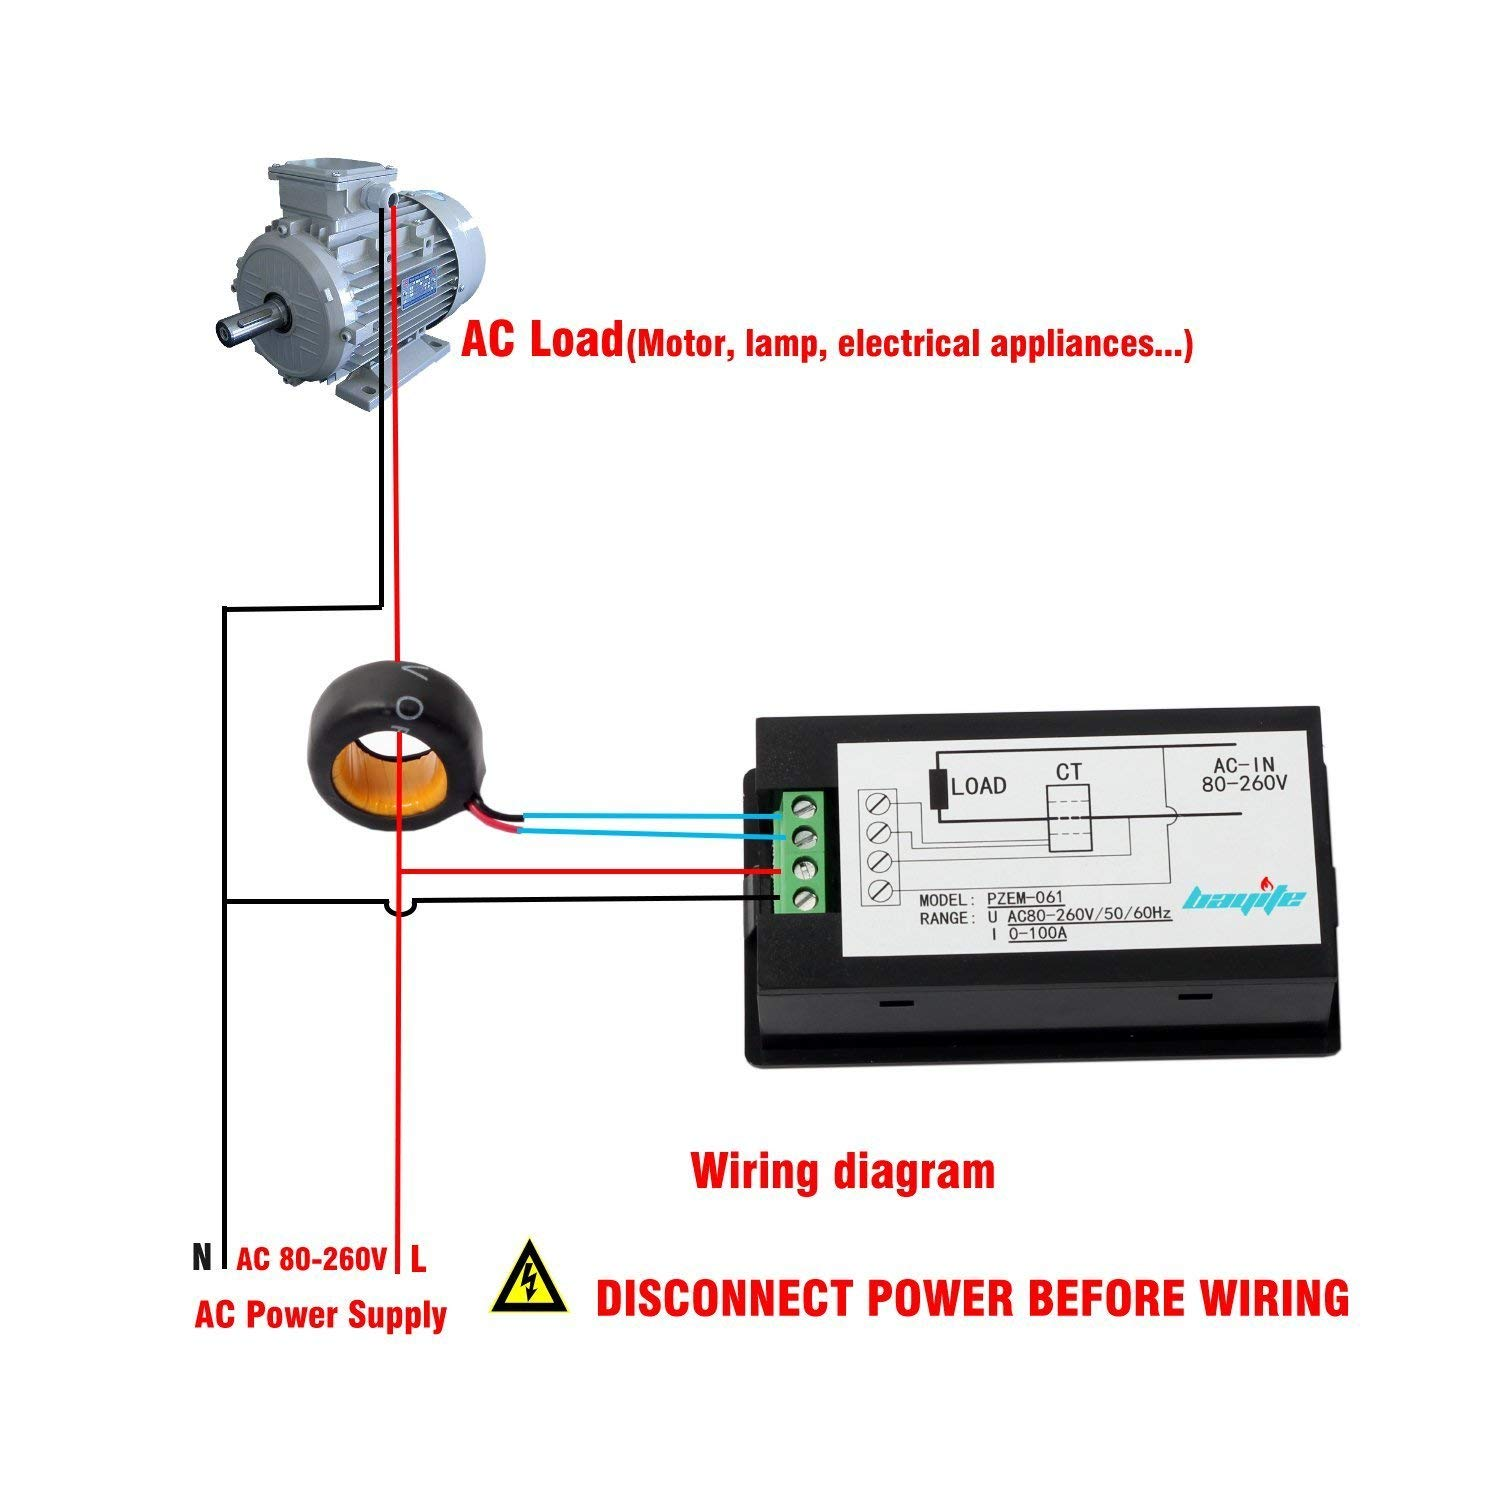 hight resolution of pzem 061 wiring diagram from amazon